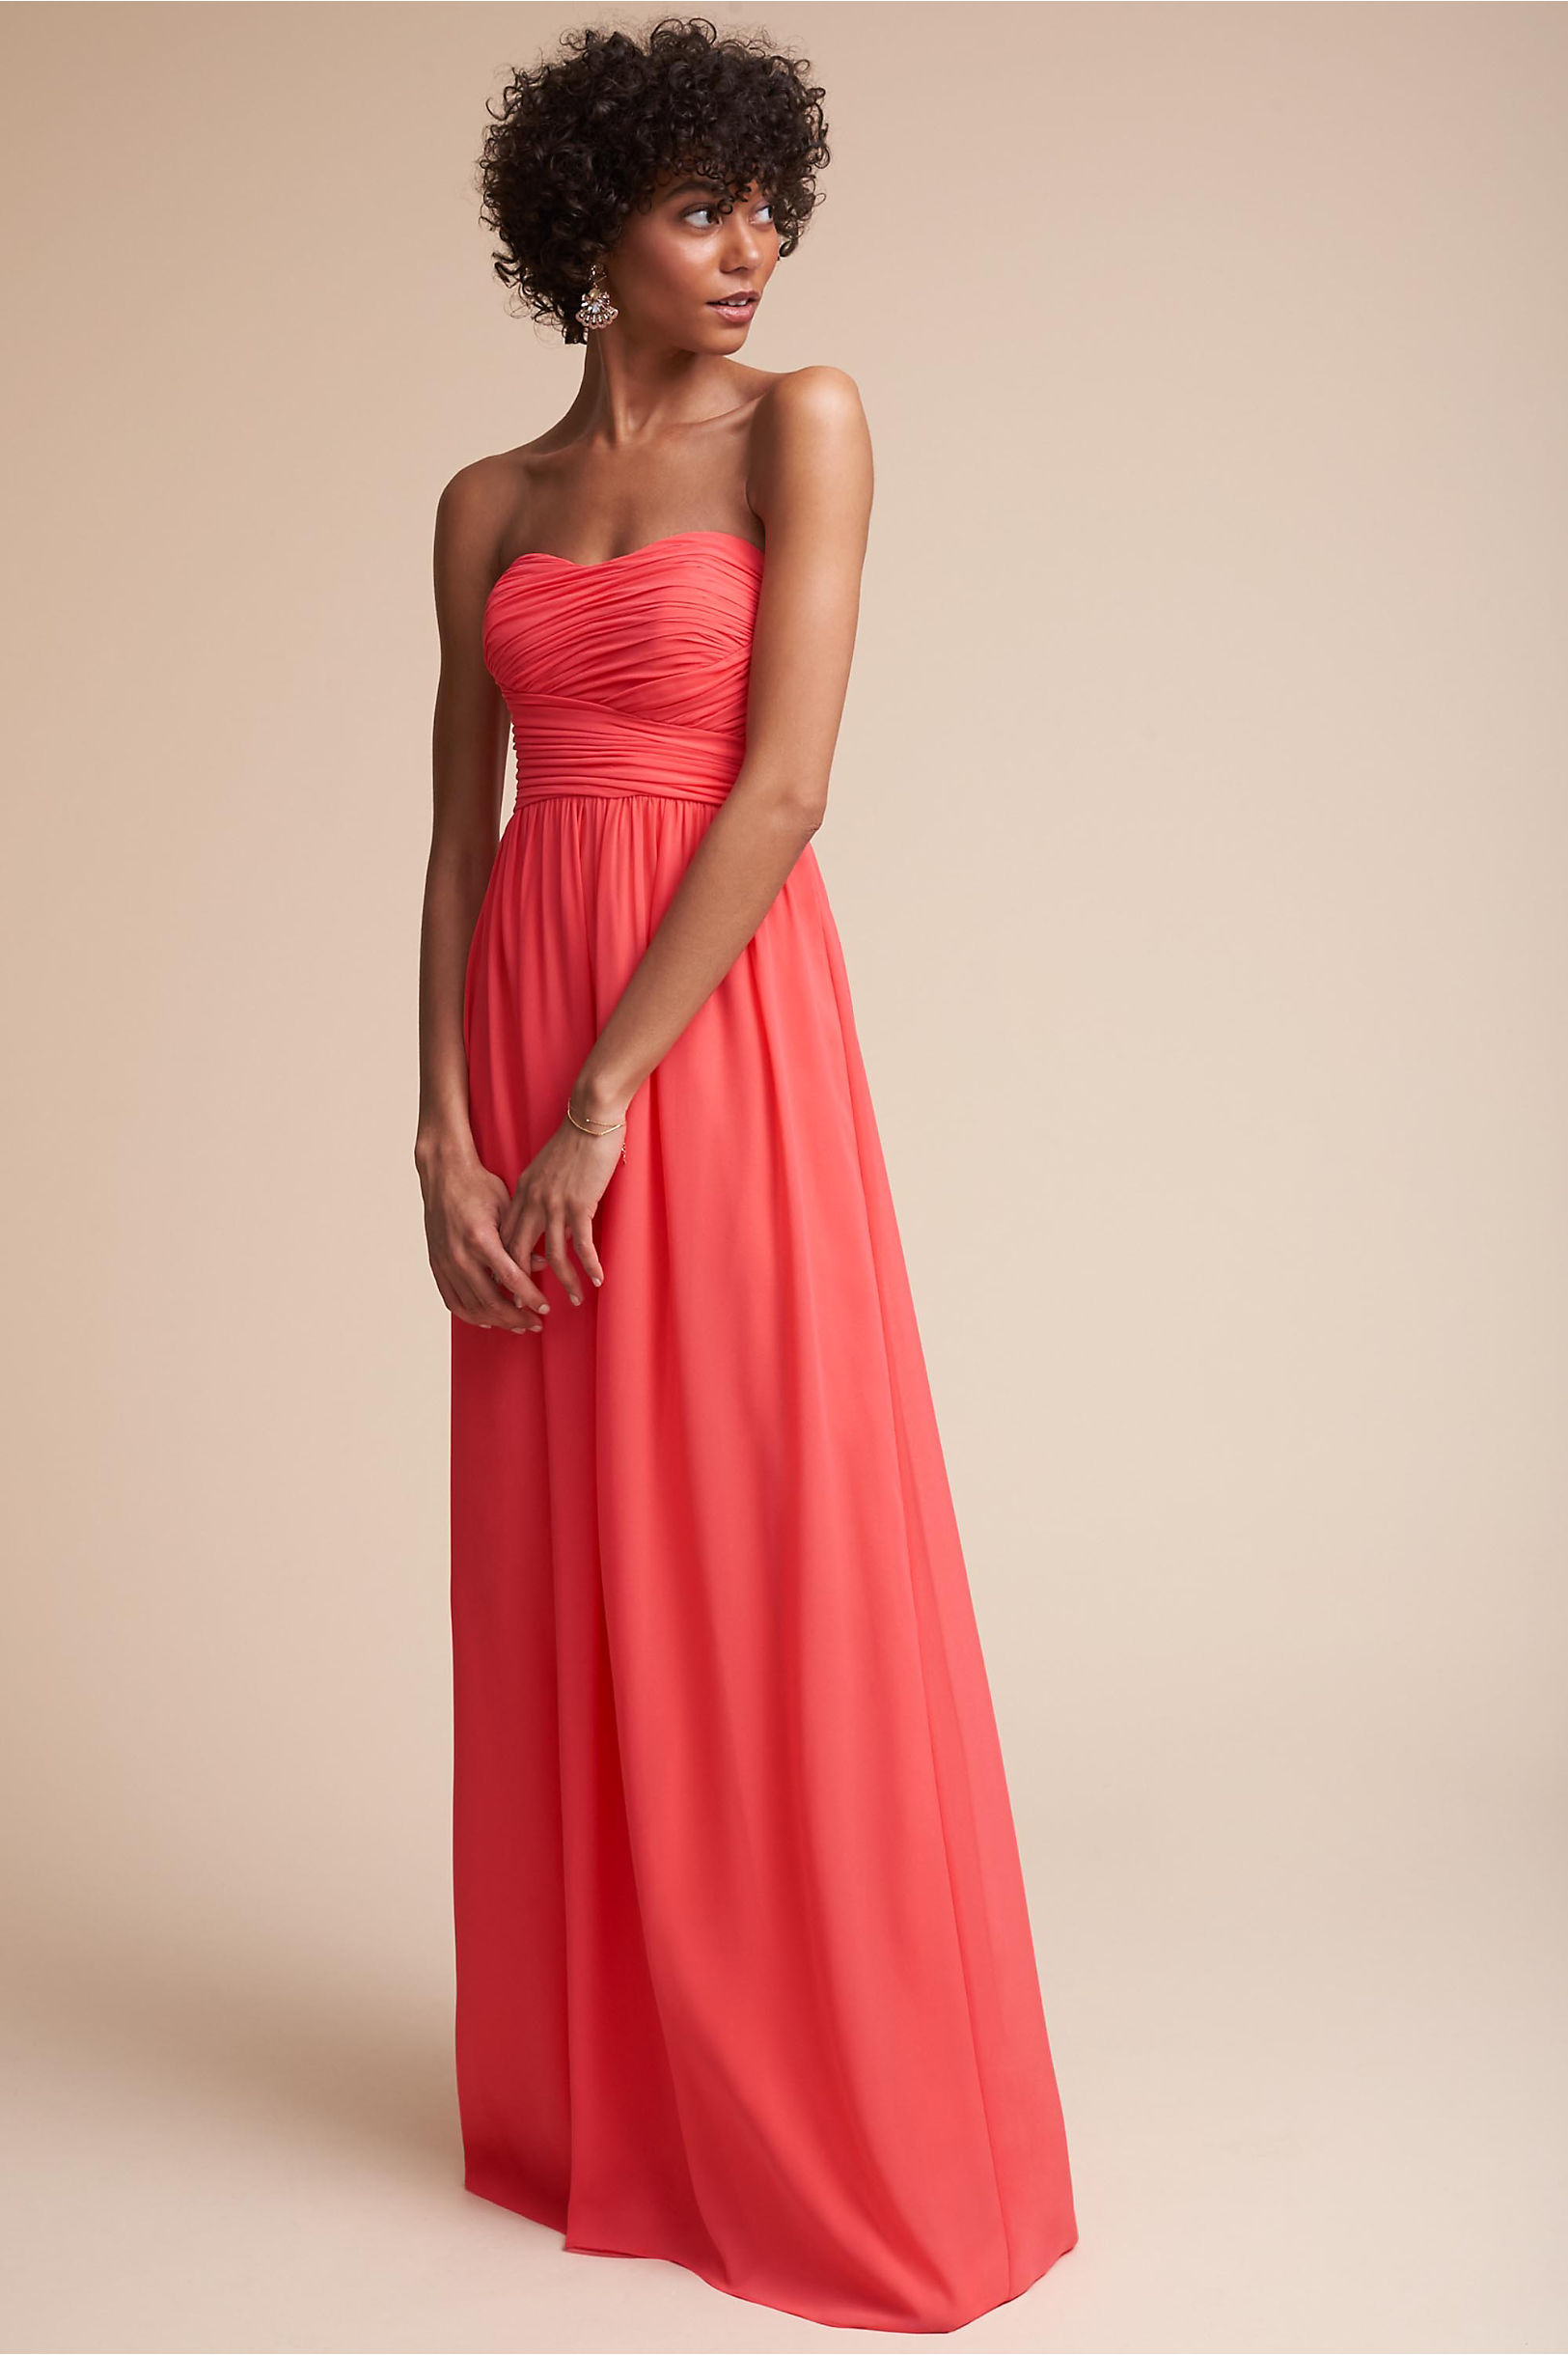 Alluring Dress Coral in Sale | BHLDN